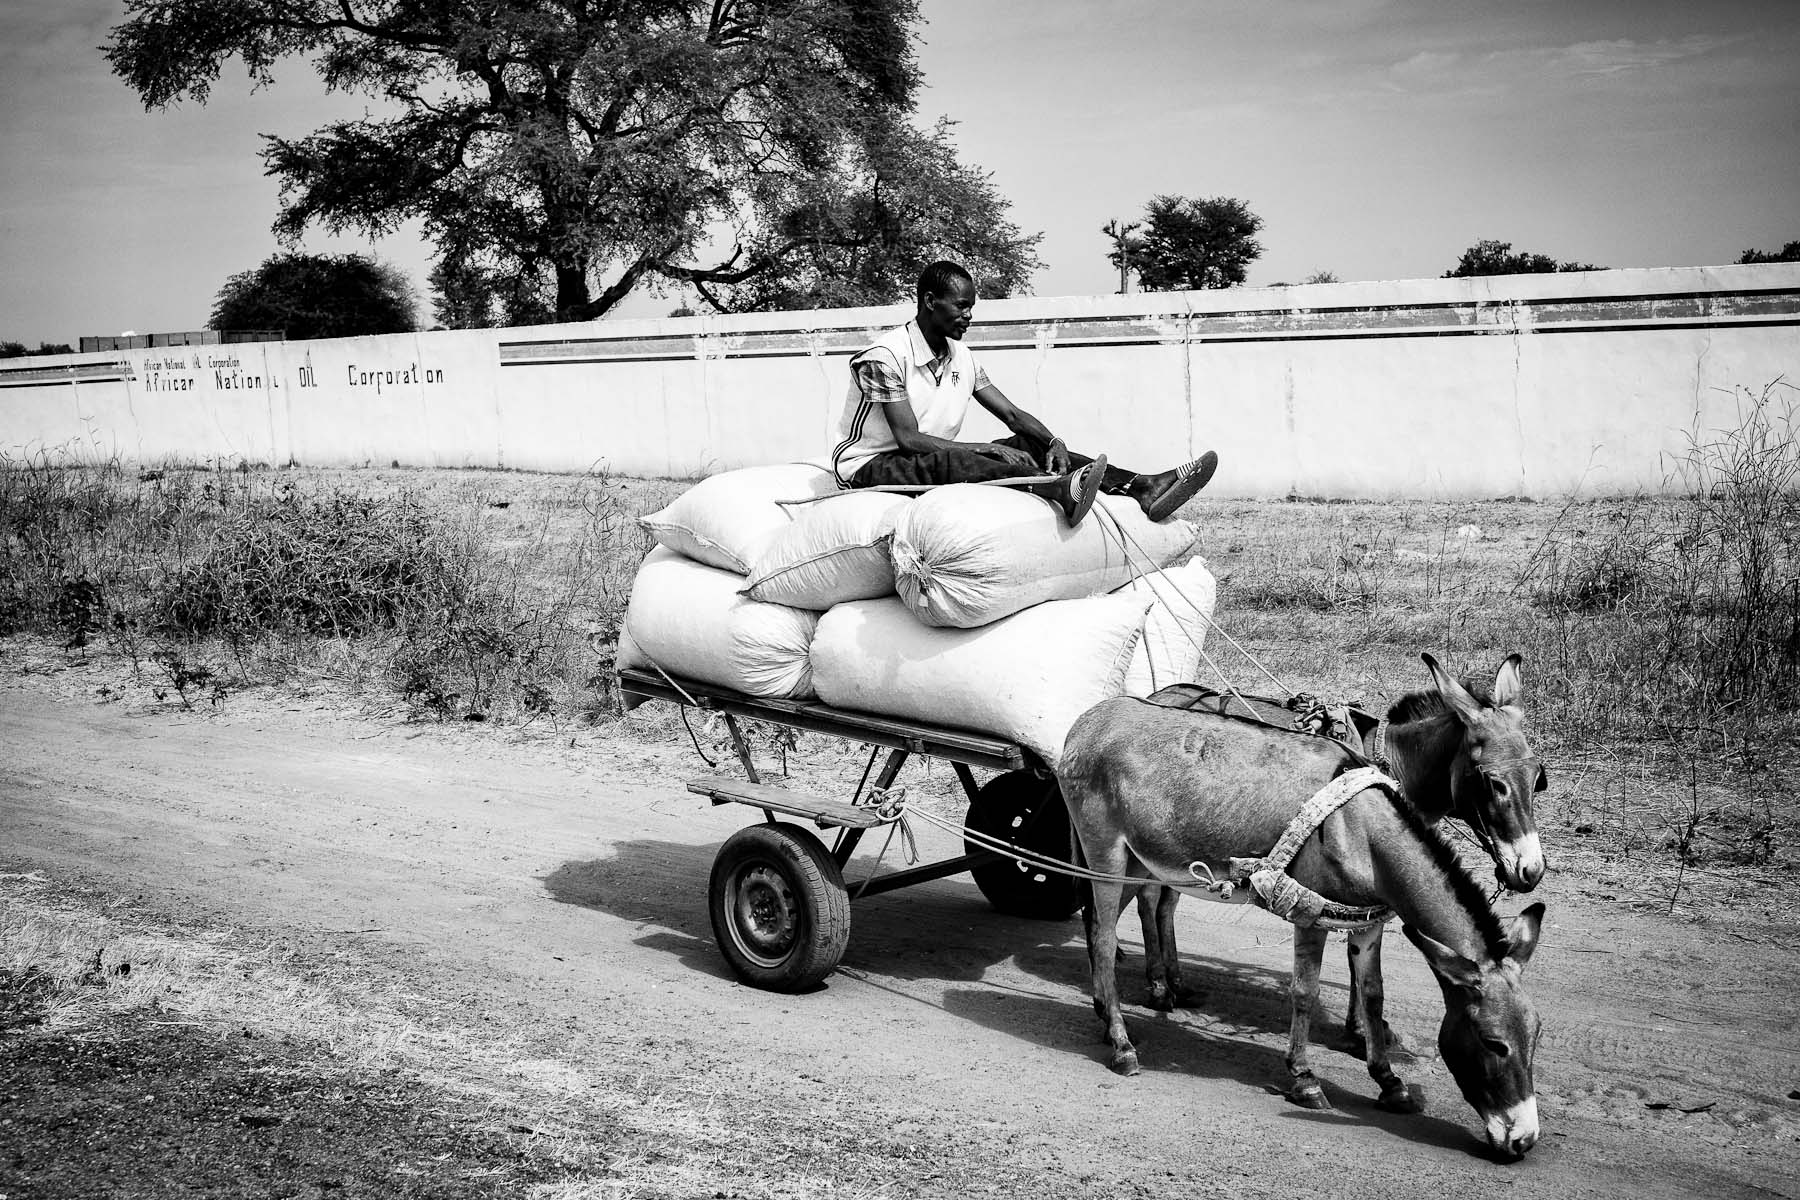 A man transporting peanuts passes the headquarters of the Italian company African National Oil Corporation in the region of Kaolac, Senegal, on January 10, 2014. The company first come to the region in 2007 aiming to buy the land for jatropha plantations for production of biofuels. Biofuels would subsequently also be used as fuel for cars in Europe. Since 2007, the company acquired a massive area of land by promising villagers that they will be regularly employed in the company, if they would sell more than 5 ha of their land. They did not keep that promise, leaving villagers without land to grow sufficient amount of food or to gain additional income.